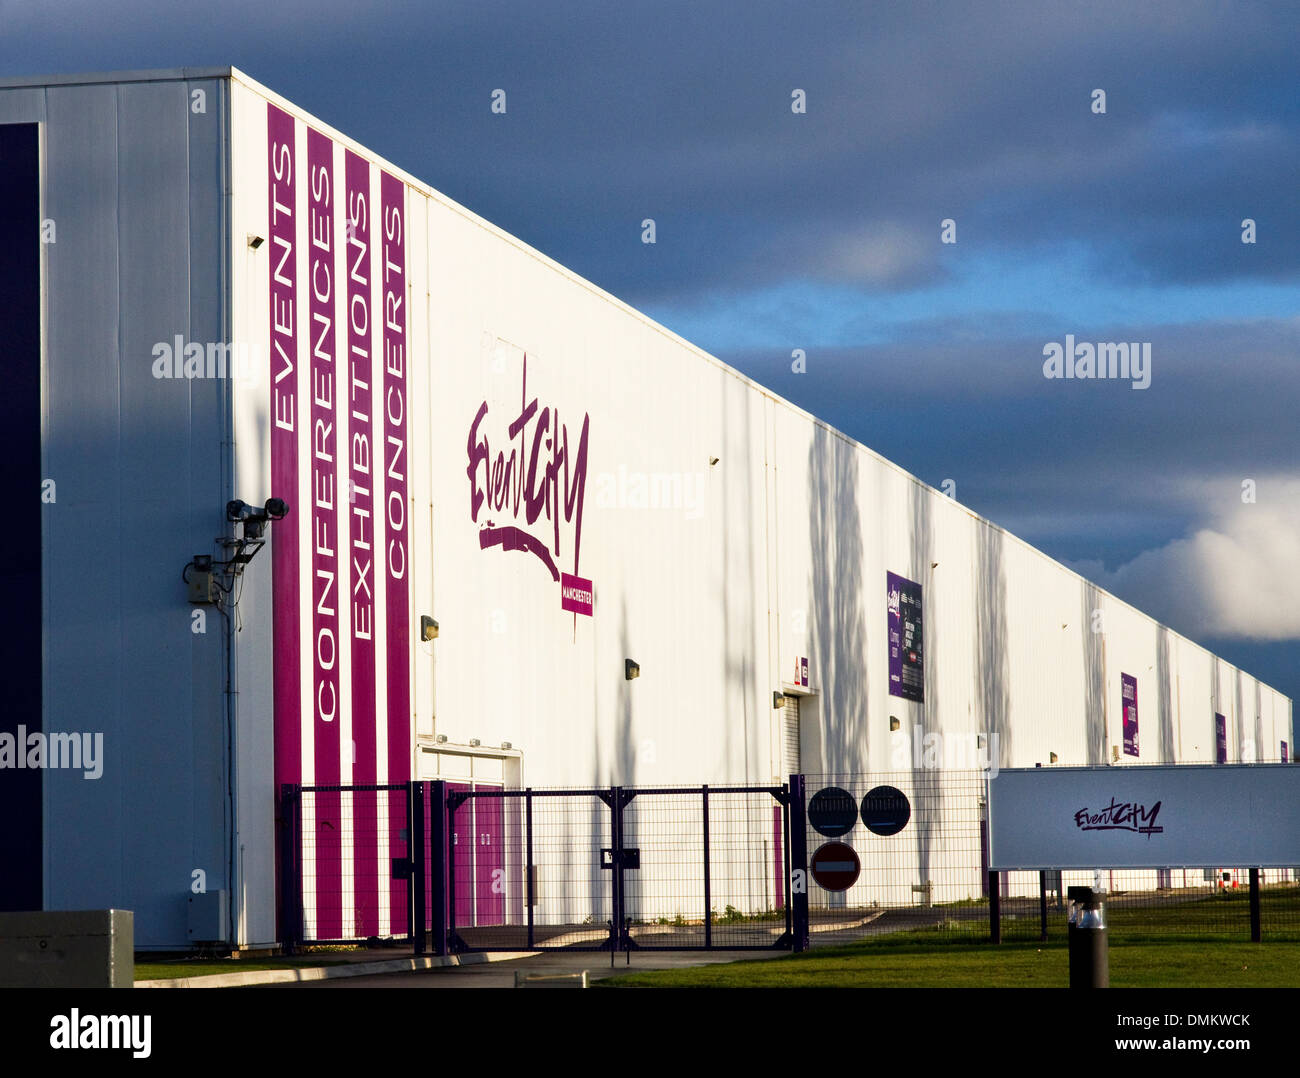 Event City (large venue for Events, Conferences, Exhibitions, Concert) adjacent to the Trafford Centre, Trafford Manchester, UK - Stock Image